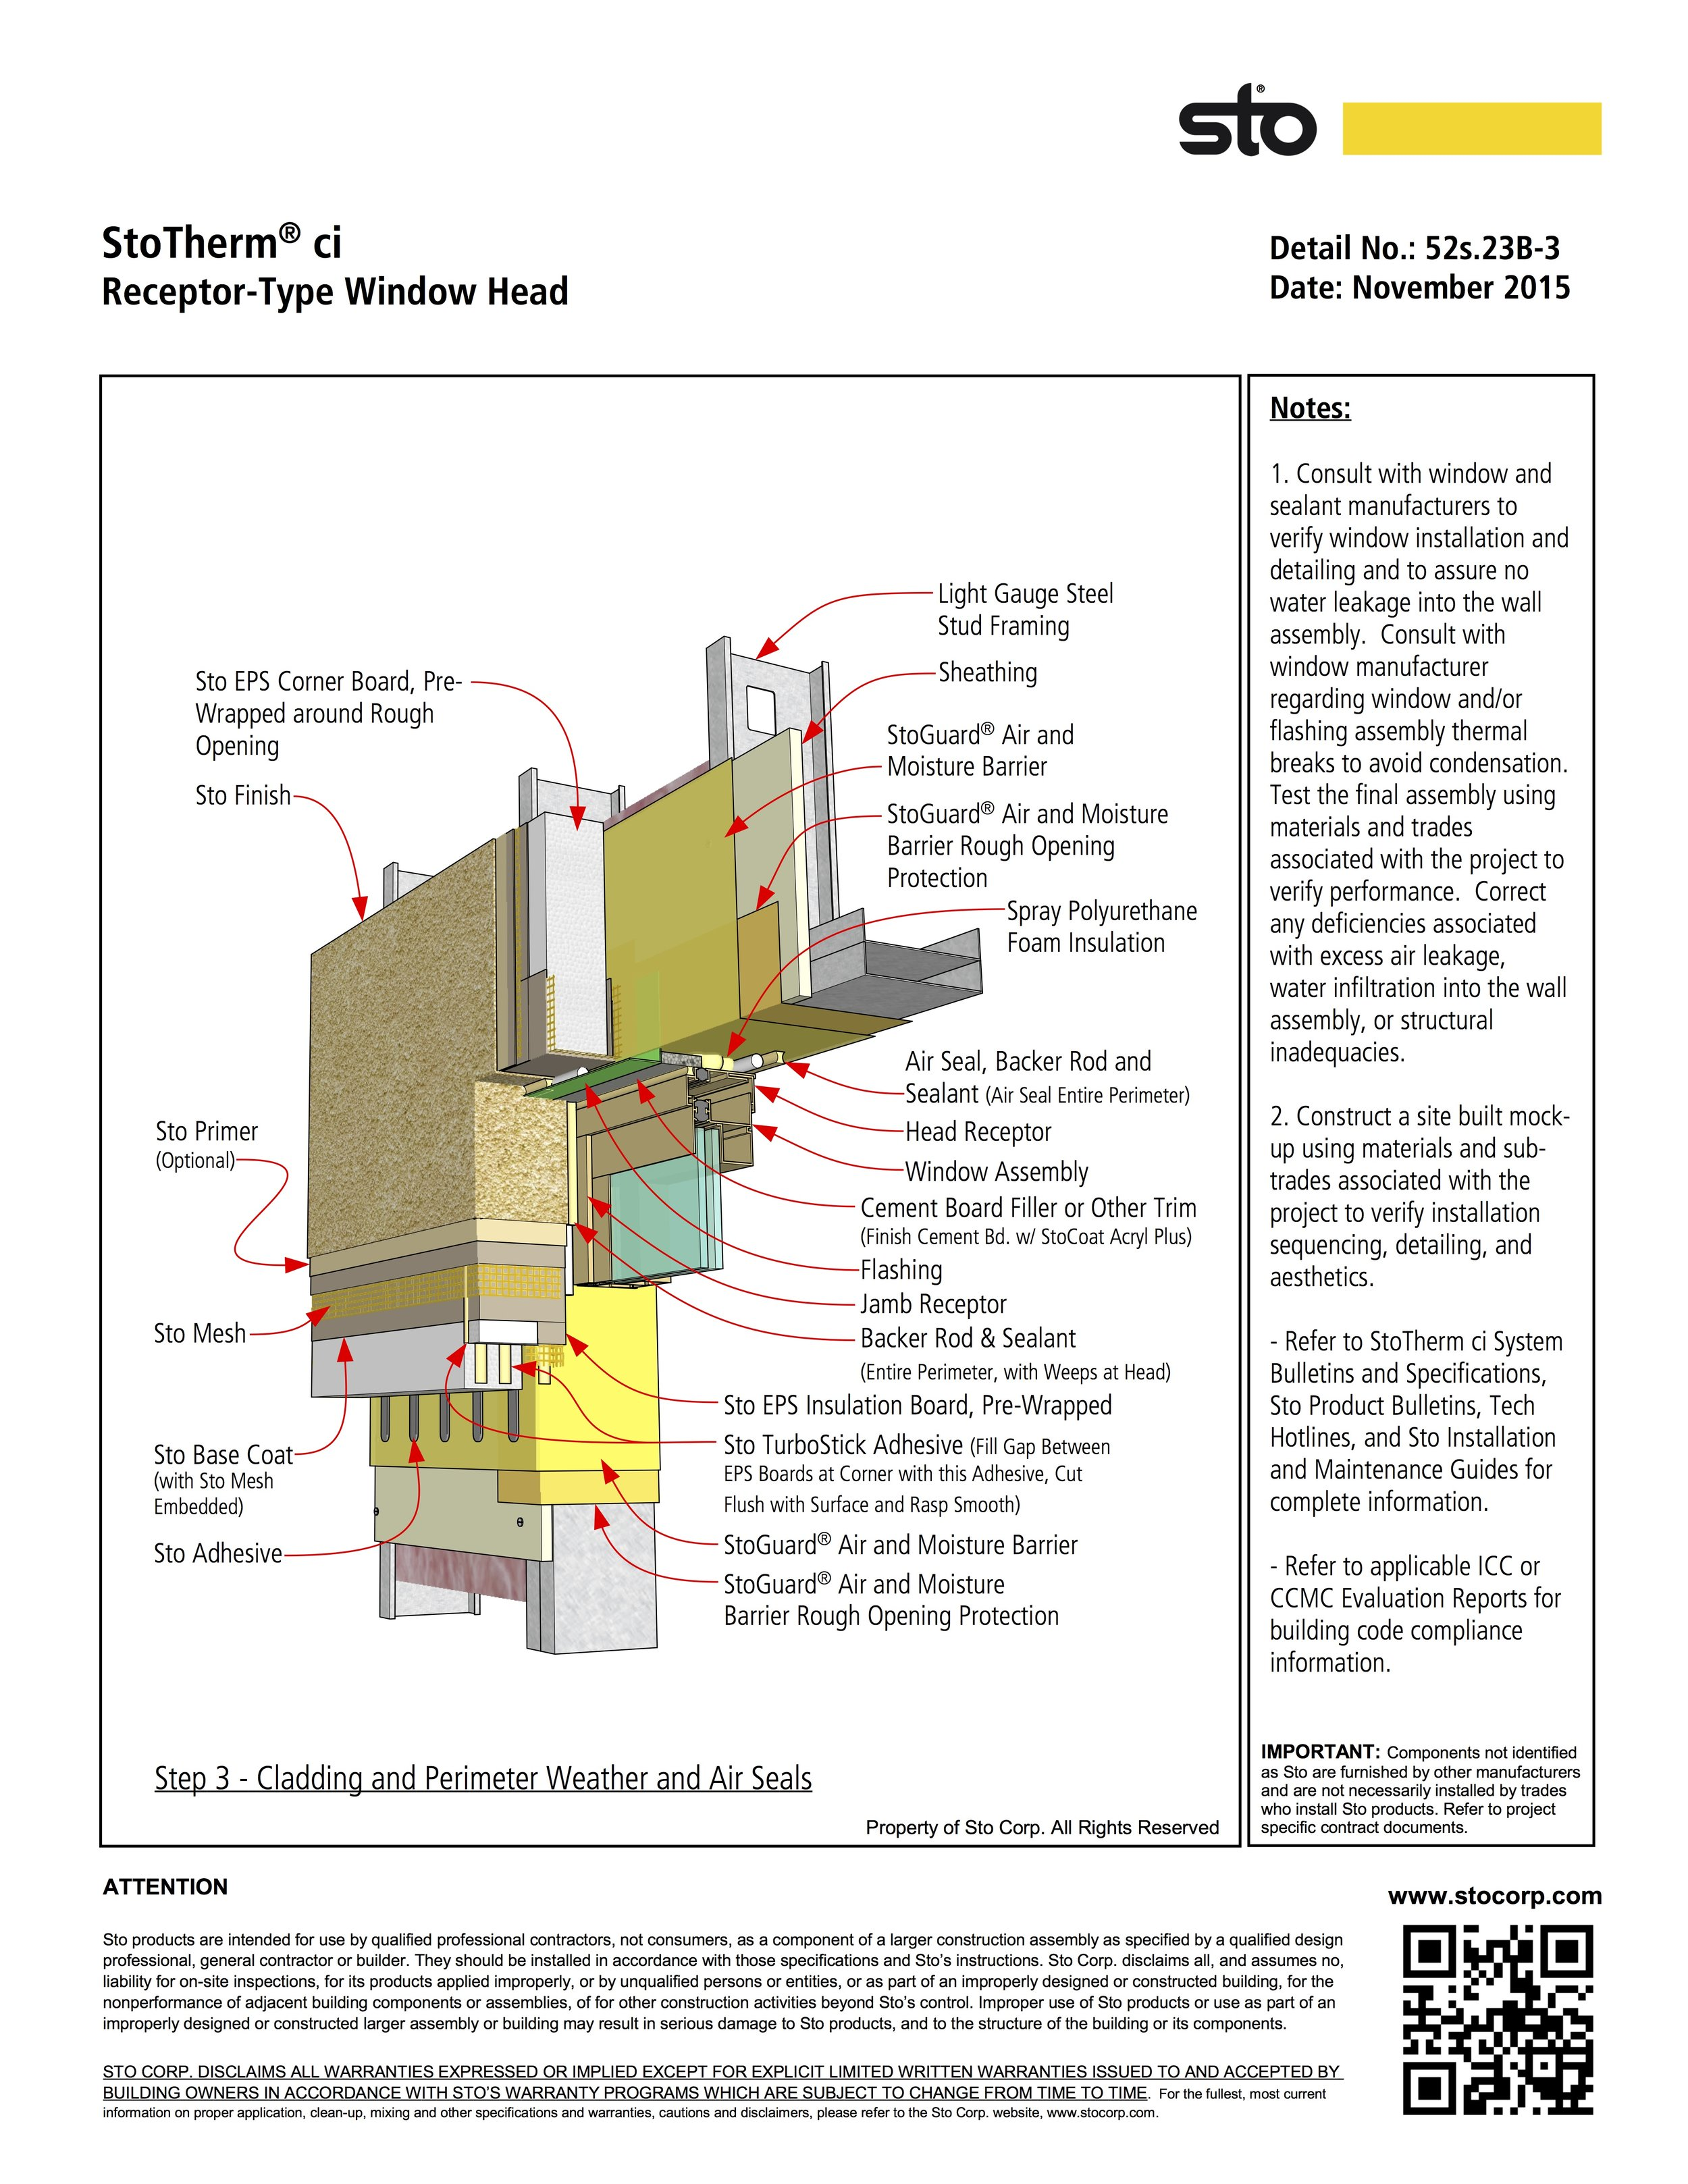 EIFS requires trained and experienced installers. Notes 1 and 2 of this specification sheet require a level of engagement that may not be present on the job site. ©STO Corp.